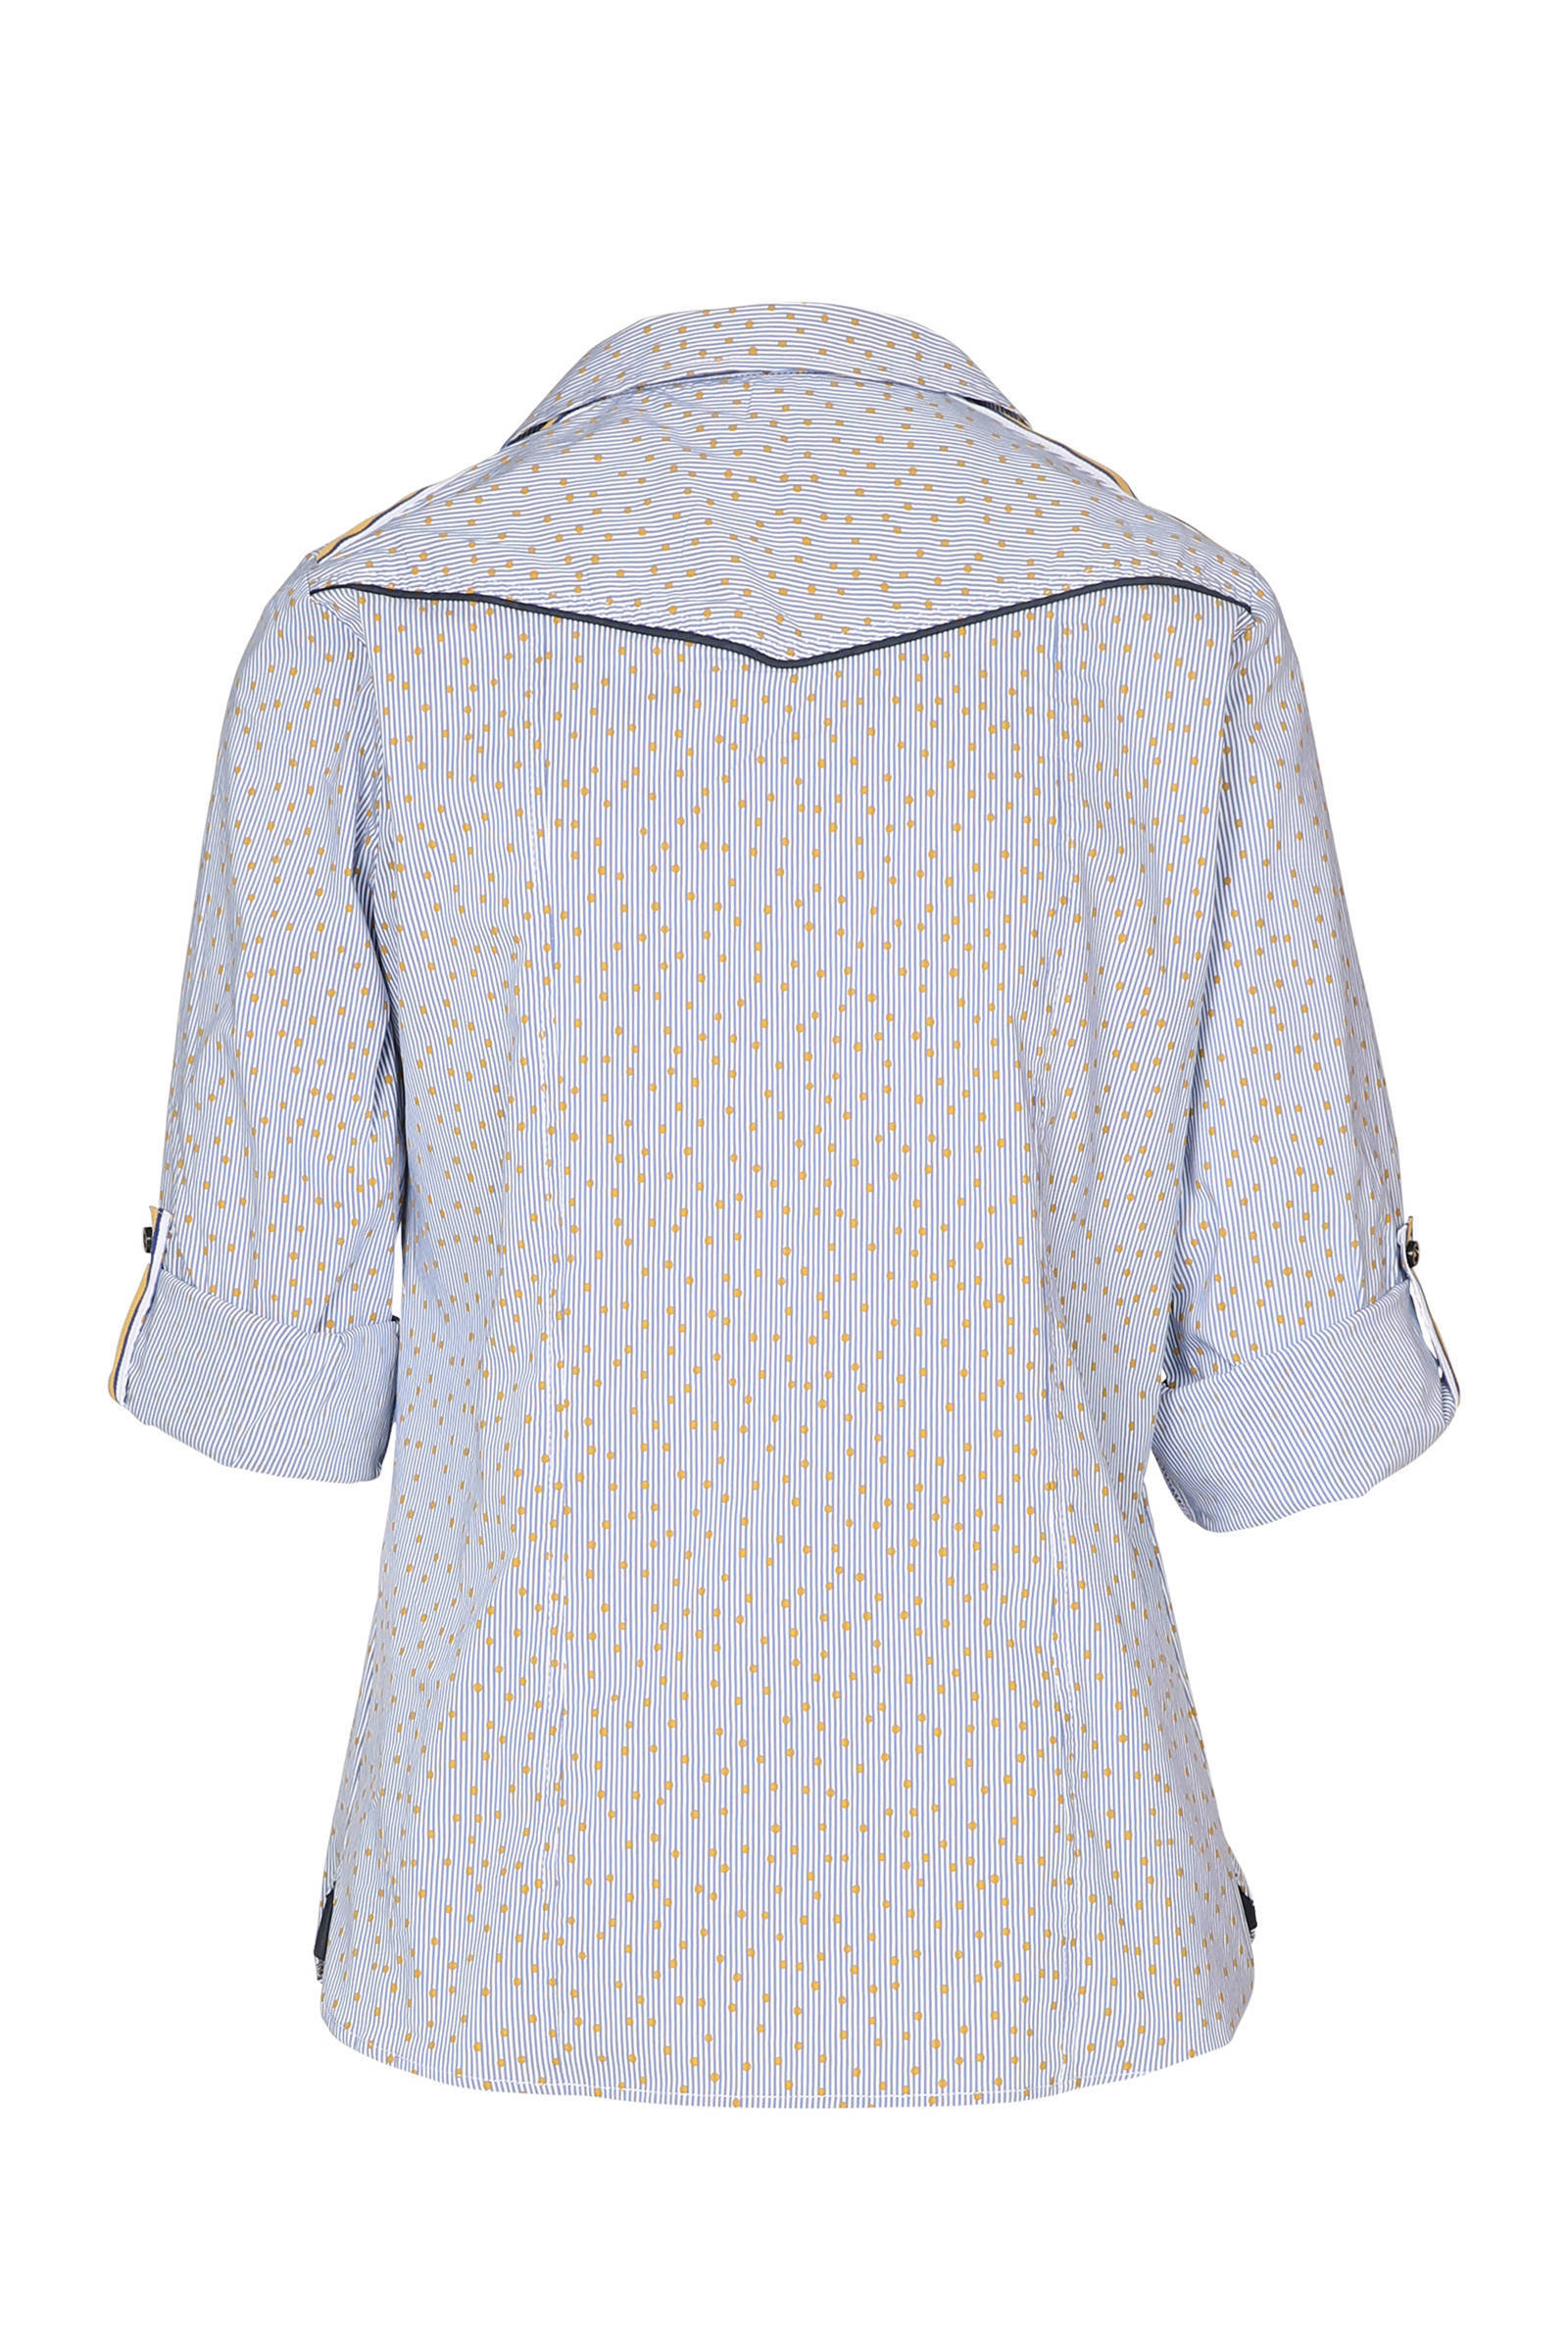 Cassis blauw blouse geel Cassis blouse blauw 0qvw6PH